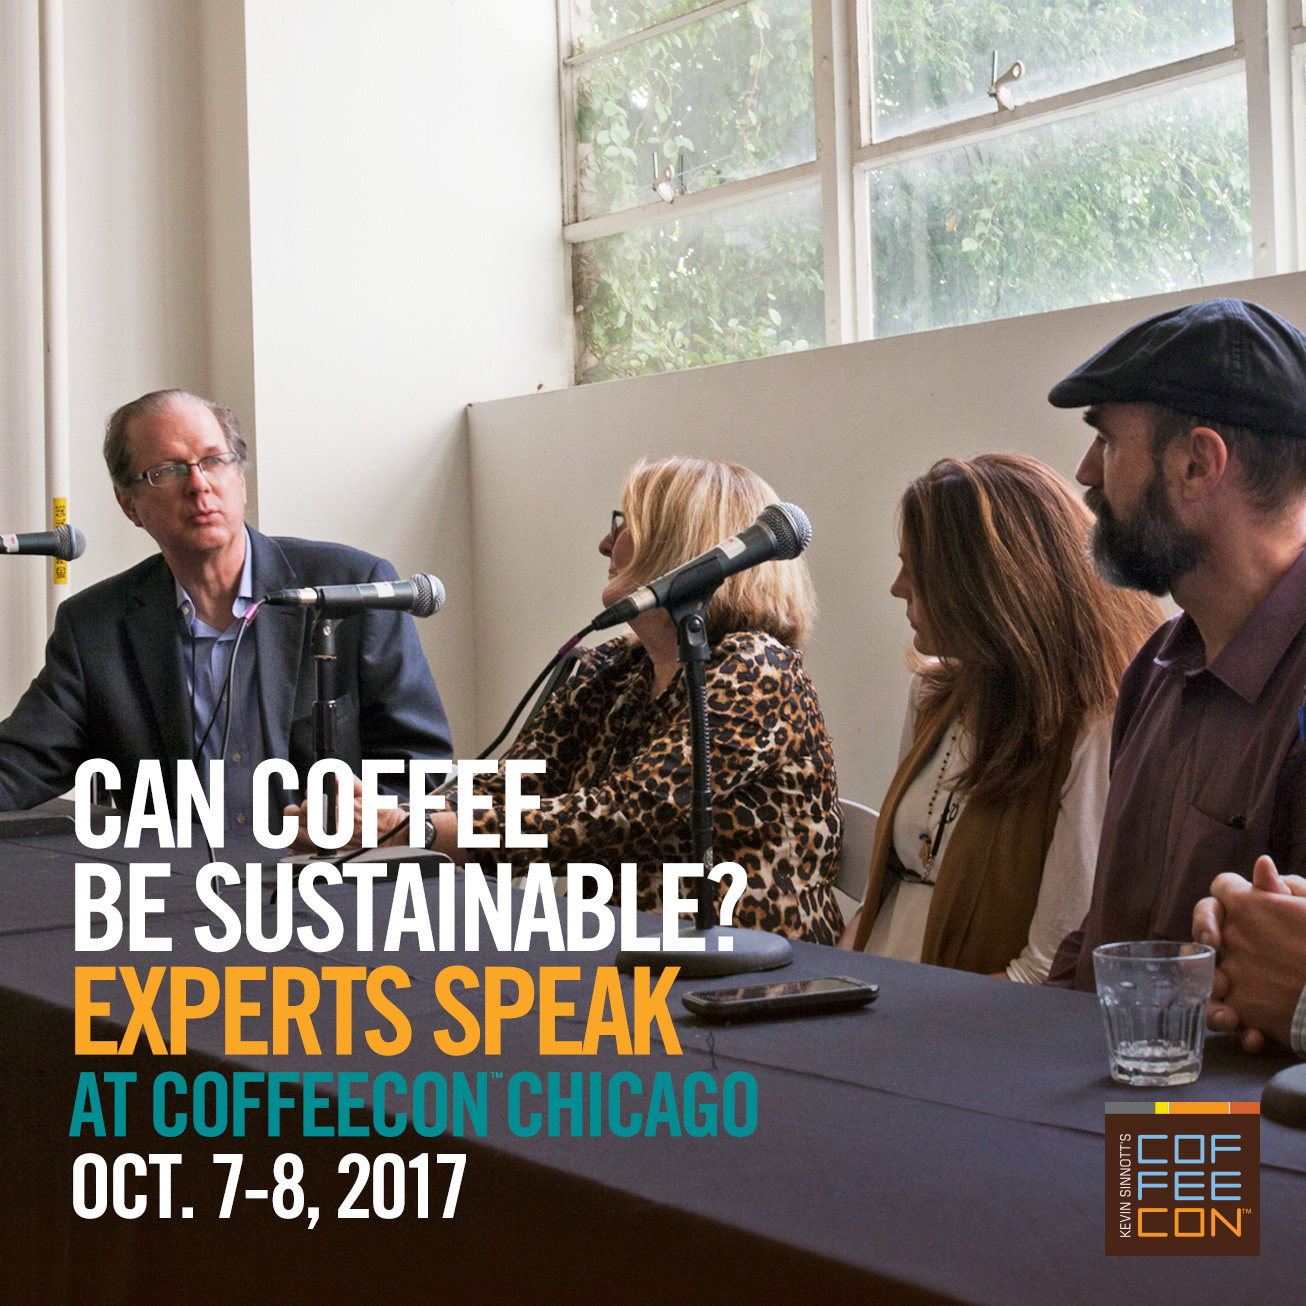 Coffee Sustainability at CoffeeConChicago 2017